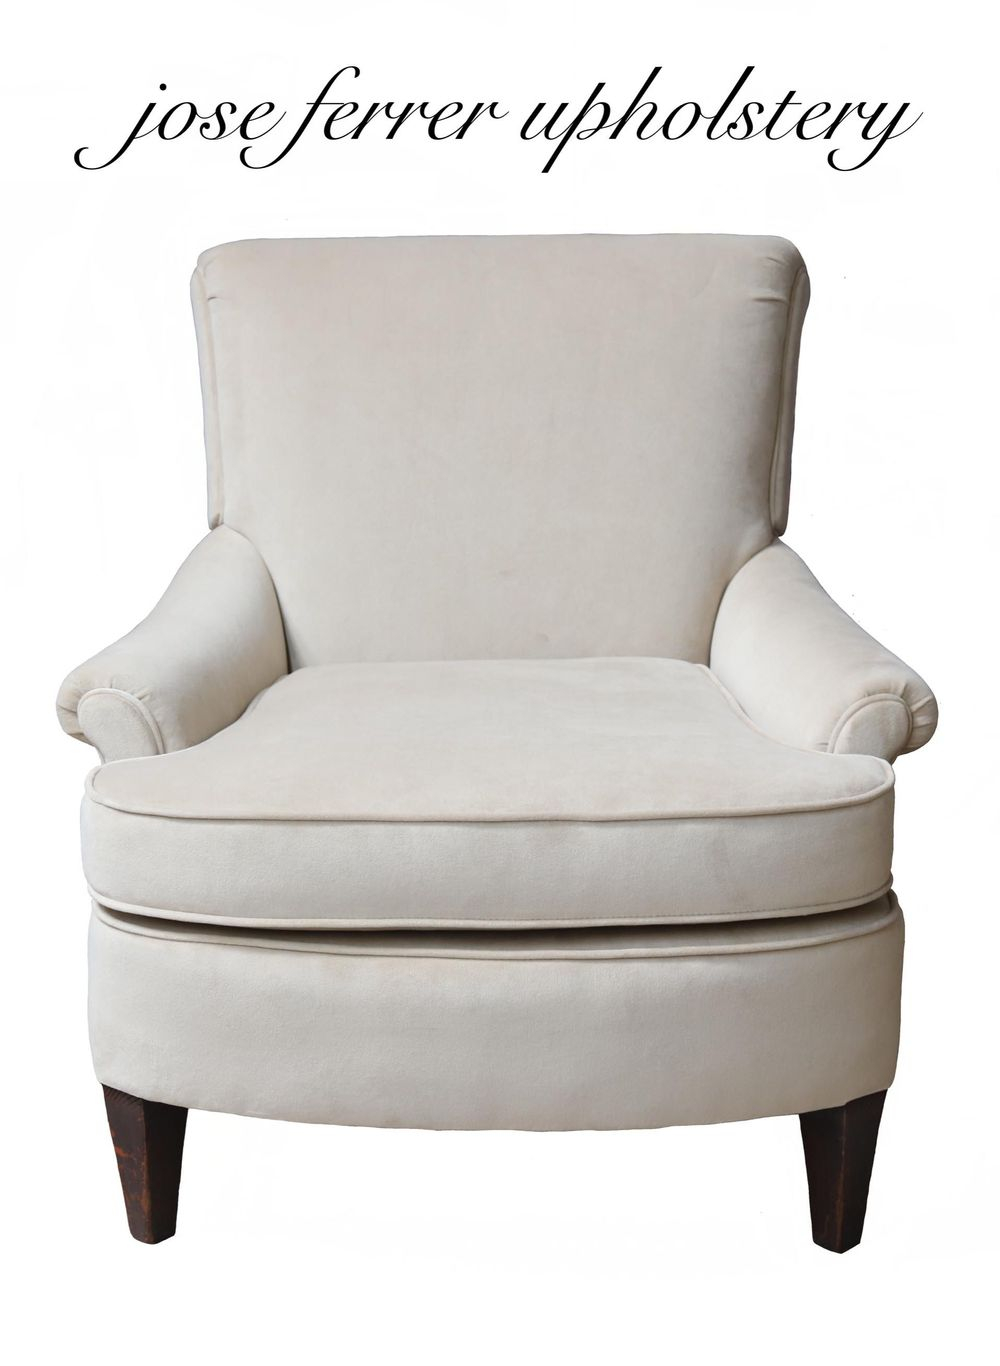 medium size chair in white velvet